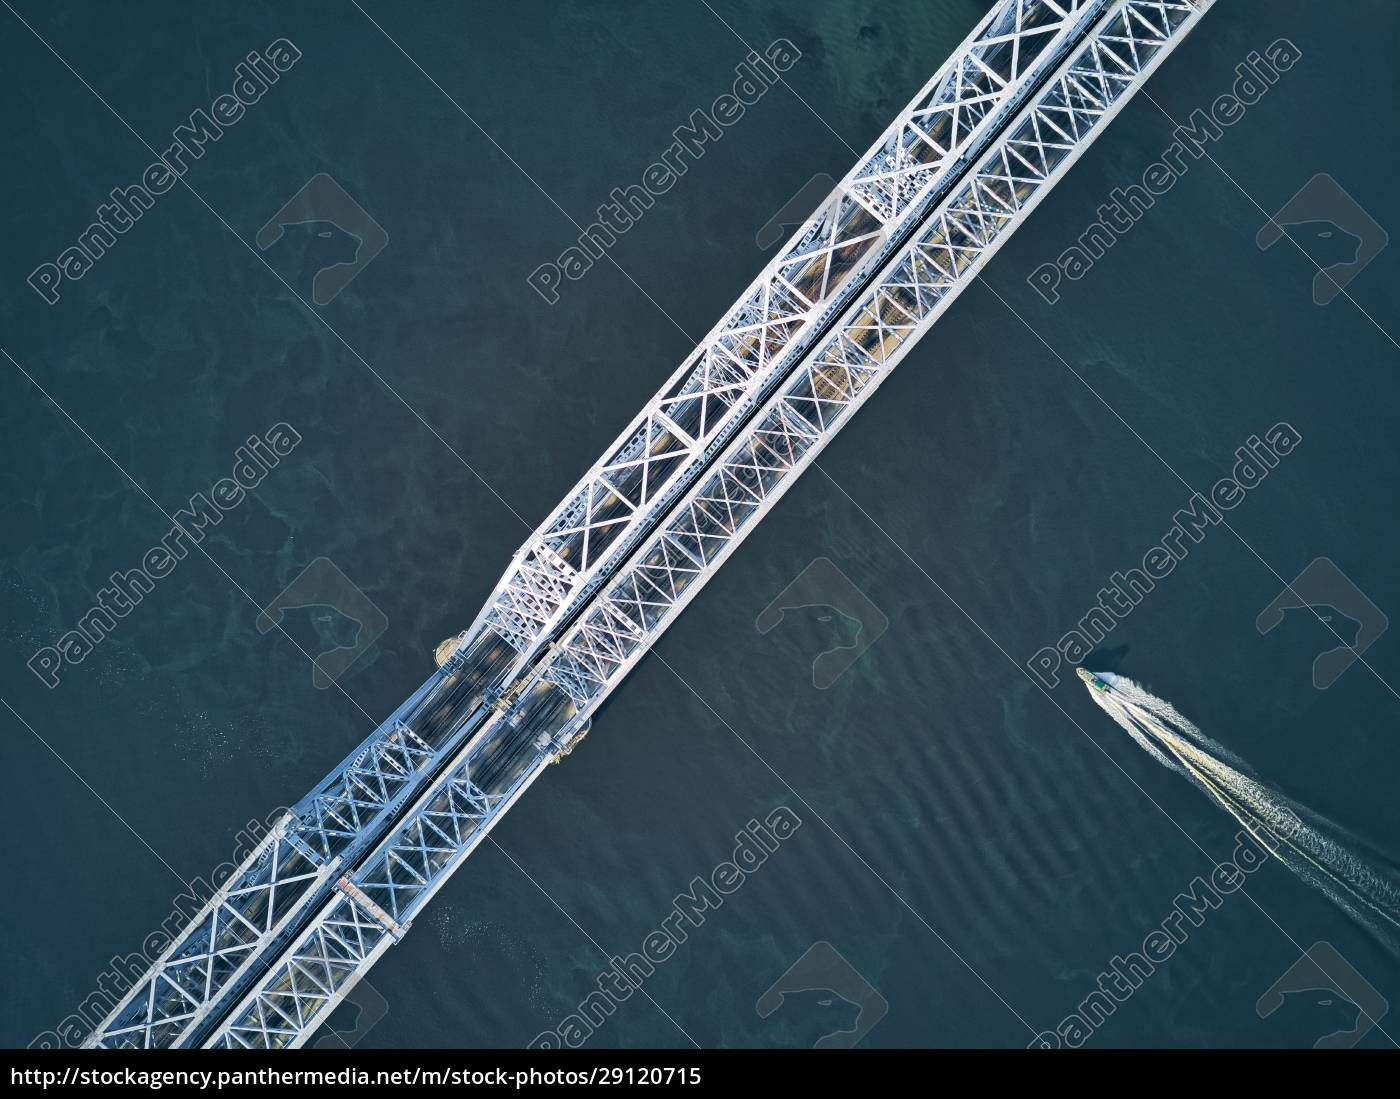 directly, above, aerial, view, of, boat - 29120715